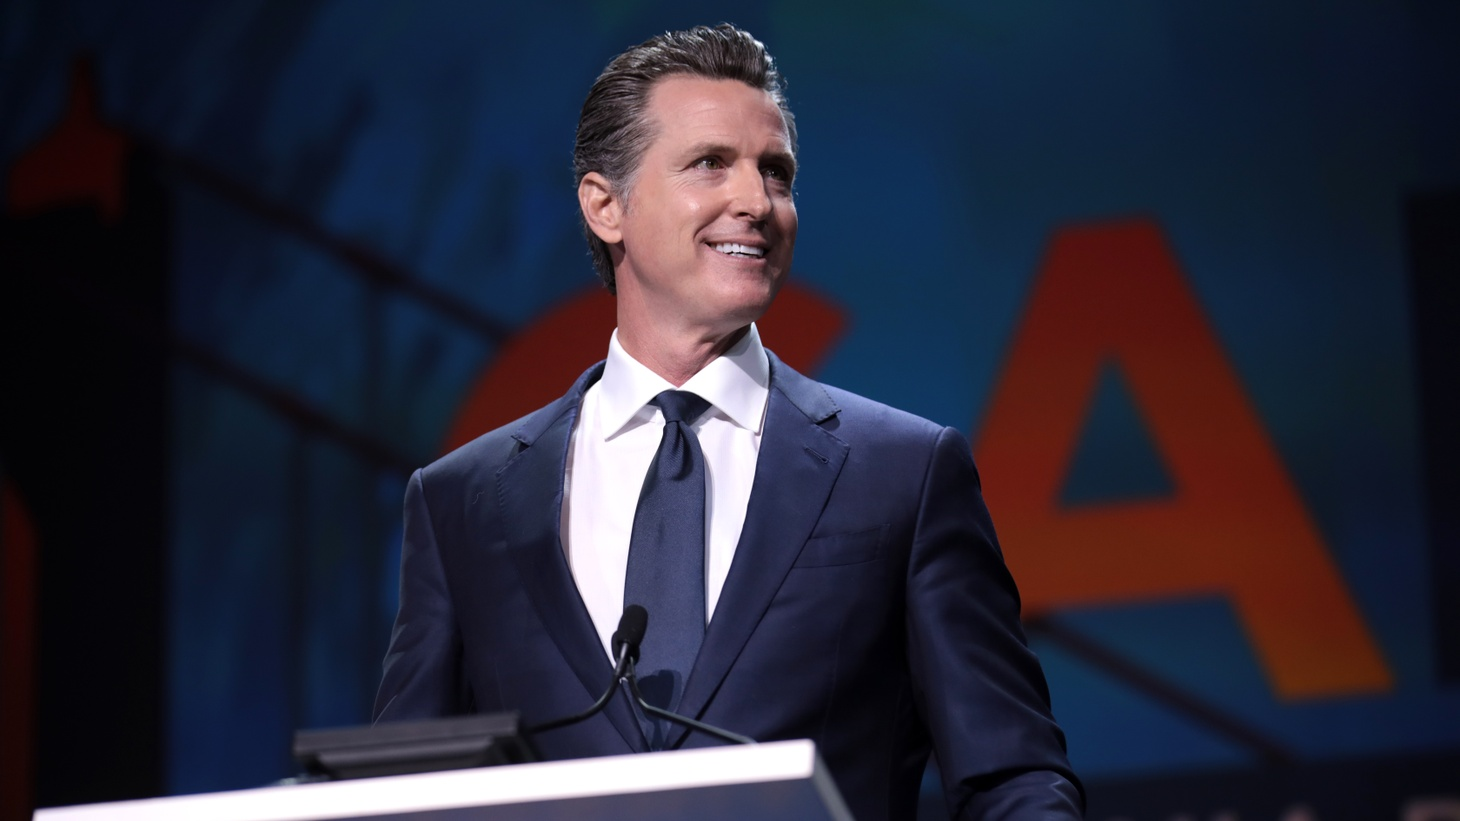 Governor Gavin Newsom made the announcement for a new regional stay-at-home order while quarantining at home. This time around, the restrictions will be triggered in regions running low on intensive care unit beds.